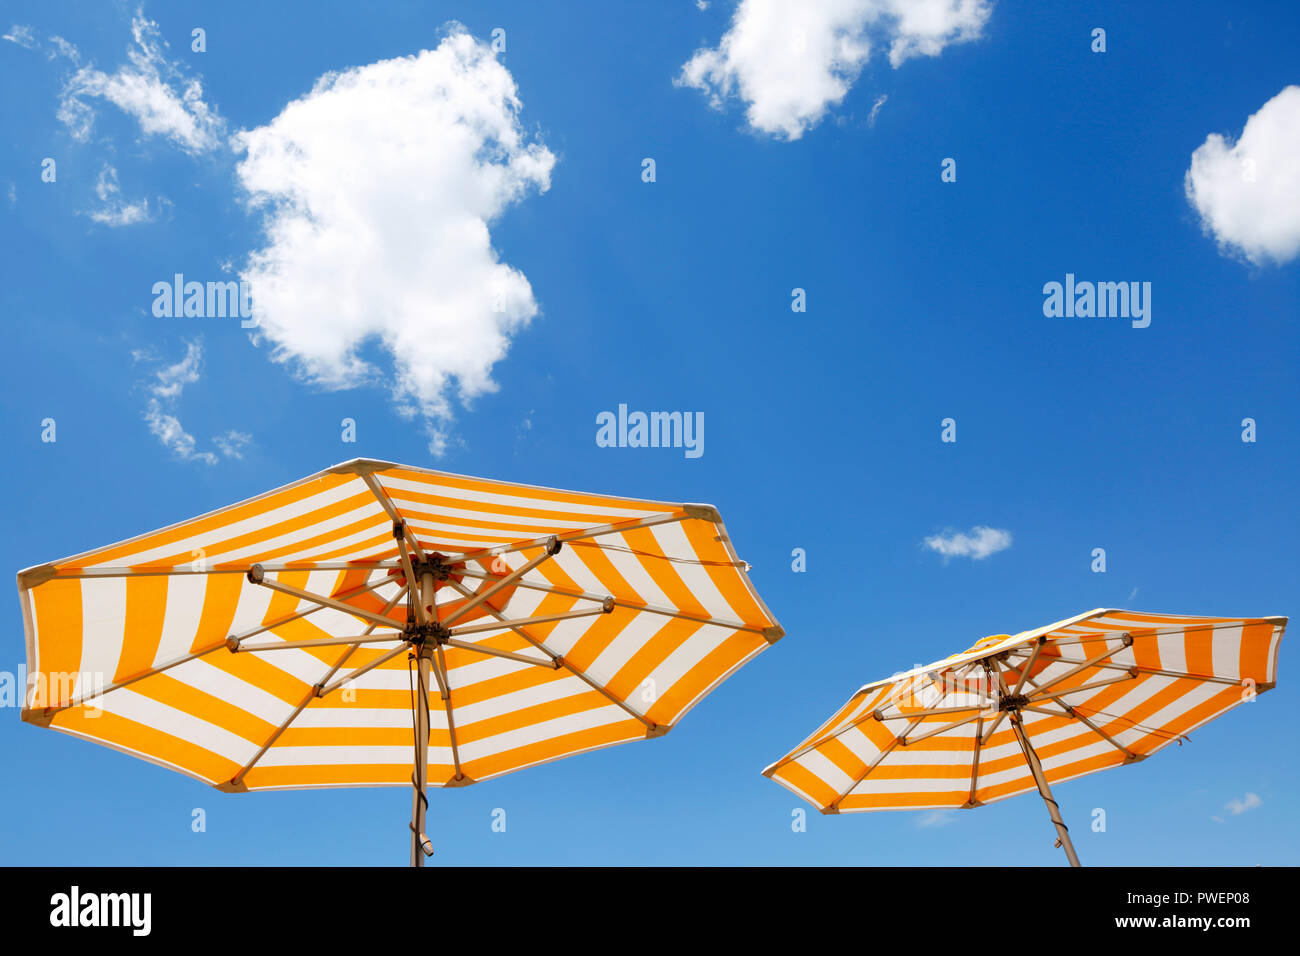 two parasols on a cruise ship against the blue sky, yellow and white, cumulus clouds, holiday, freetime, recreation, relaxation, sunlight, sunshine, shelter from sun, unpeopled, travel, cruise, tourism - Stock Image